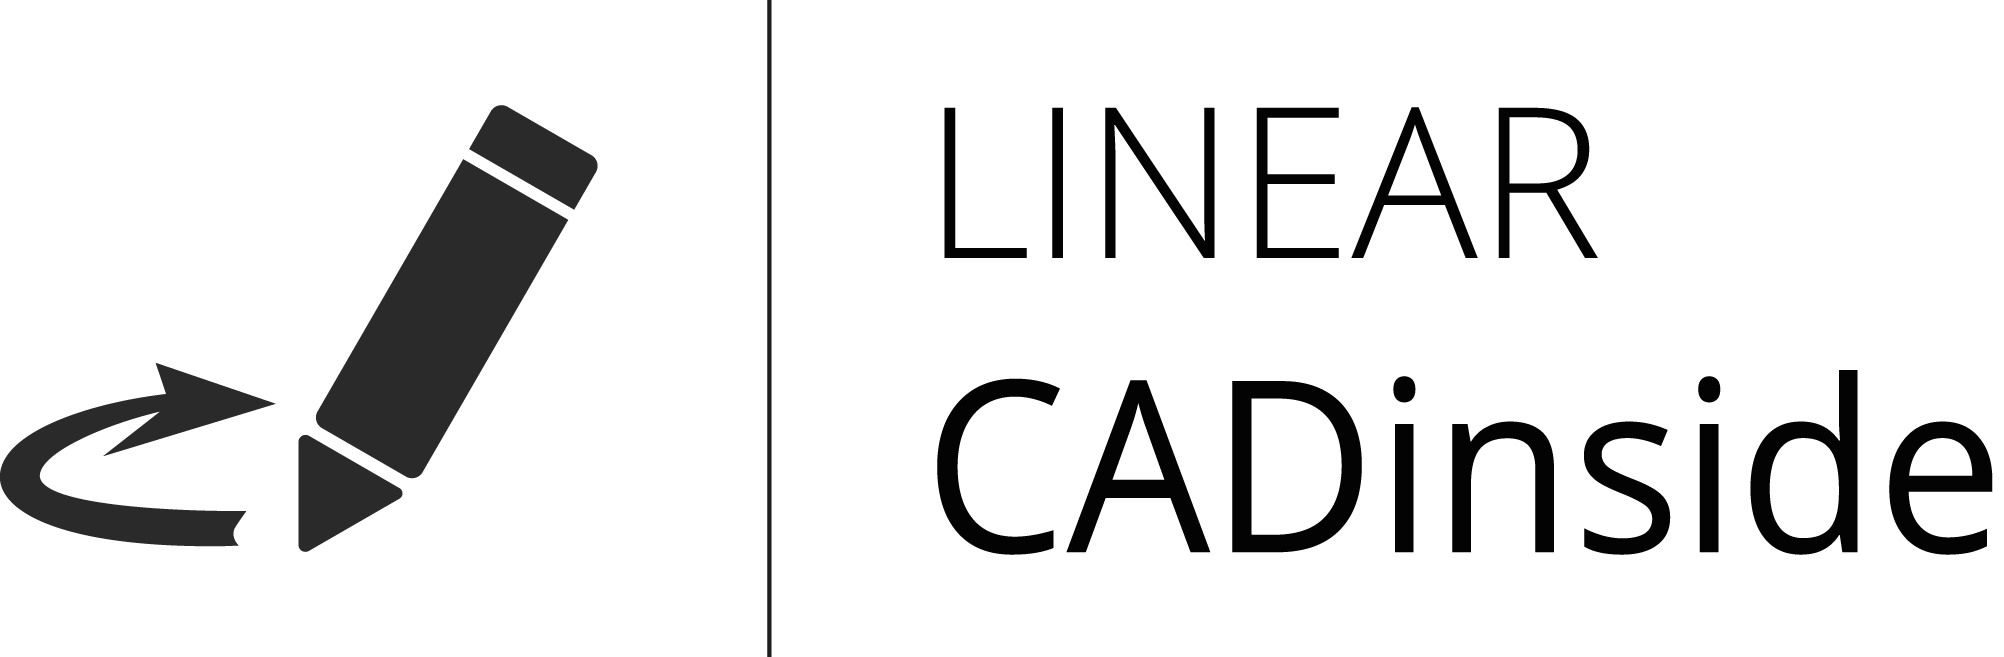 Link do liNear CADinside